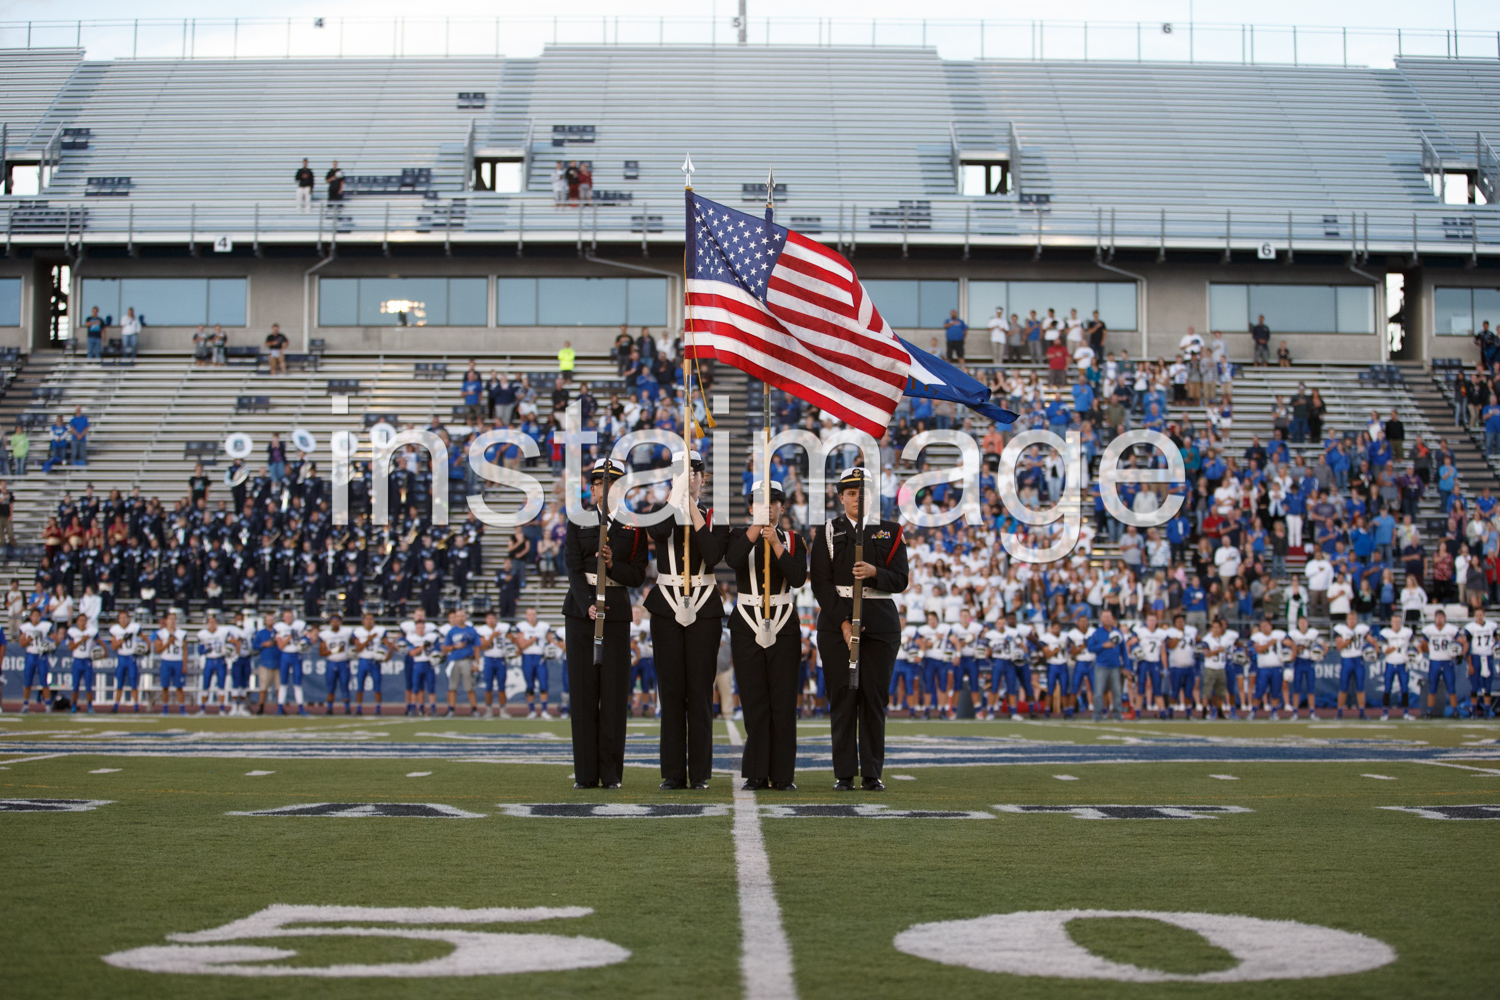 Carson High Navy Jr. ROTC members display the colors before the game.